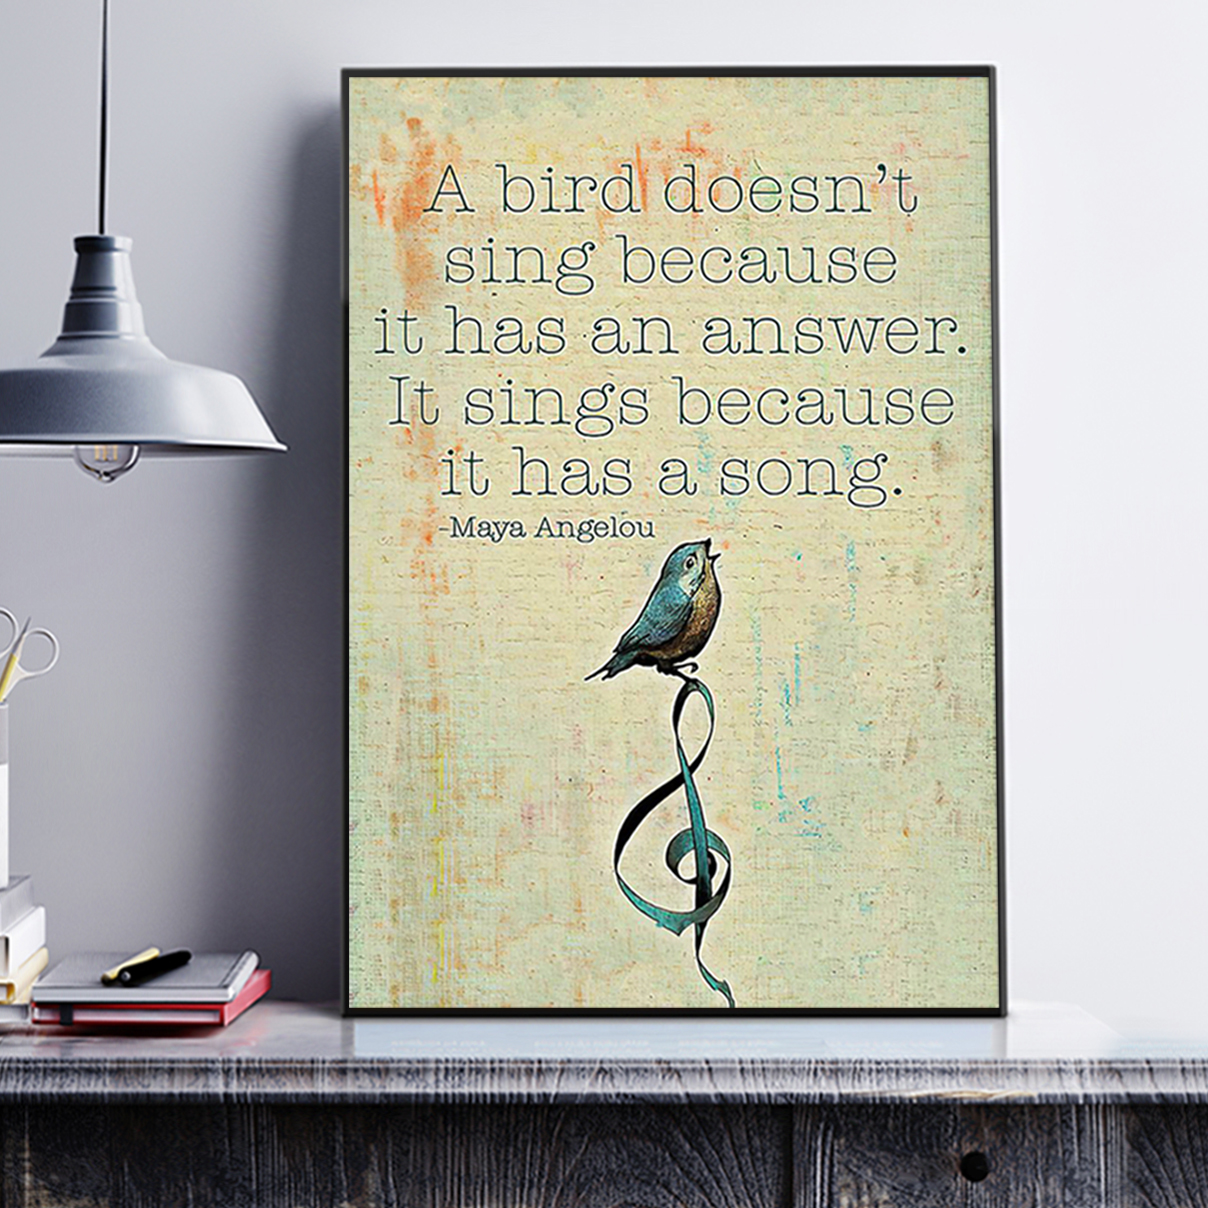 Maya angelou a bird doesn't sing because it has an answer poster A2